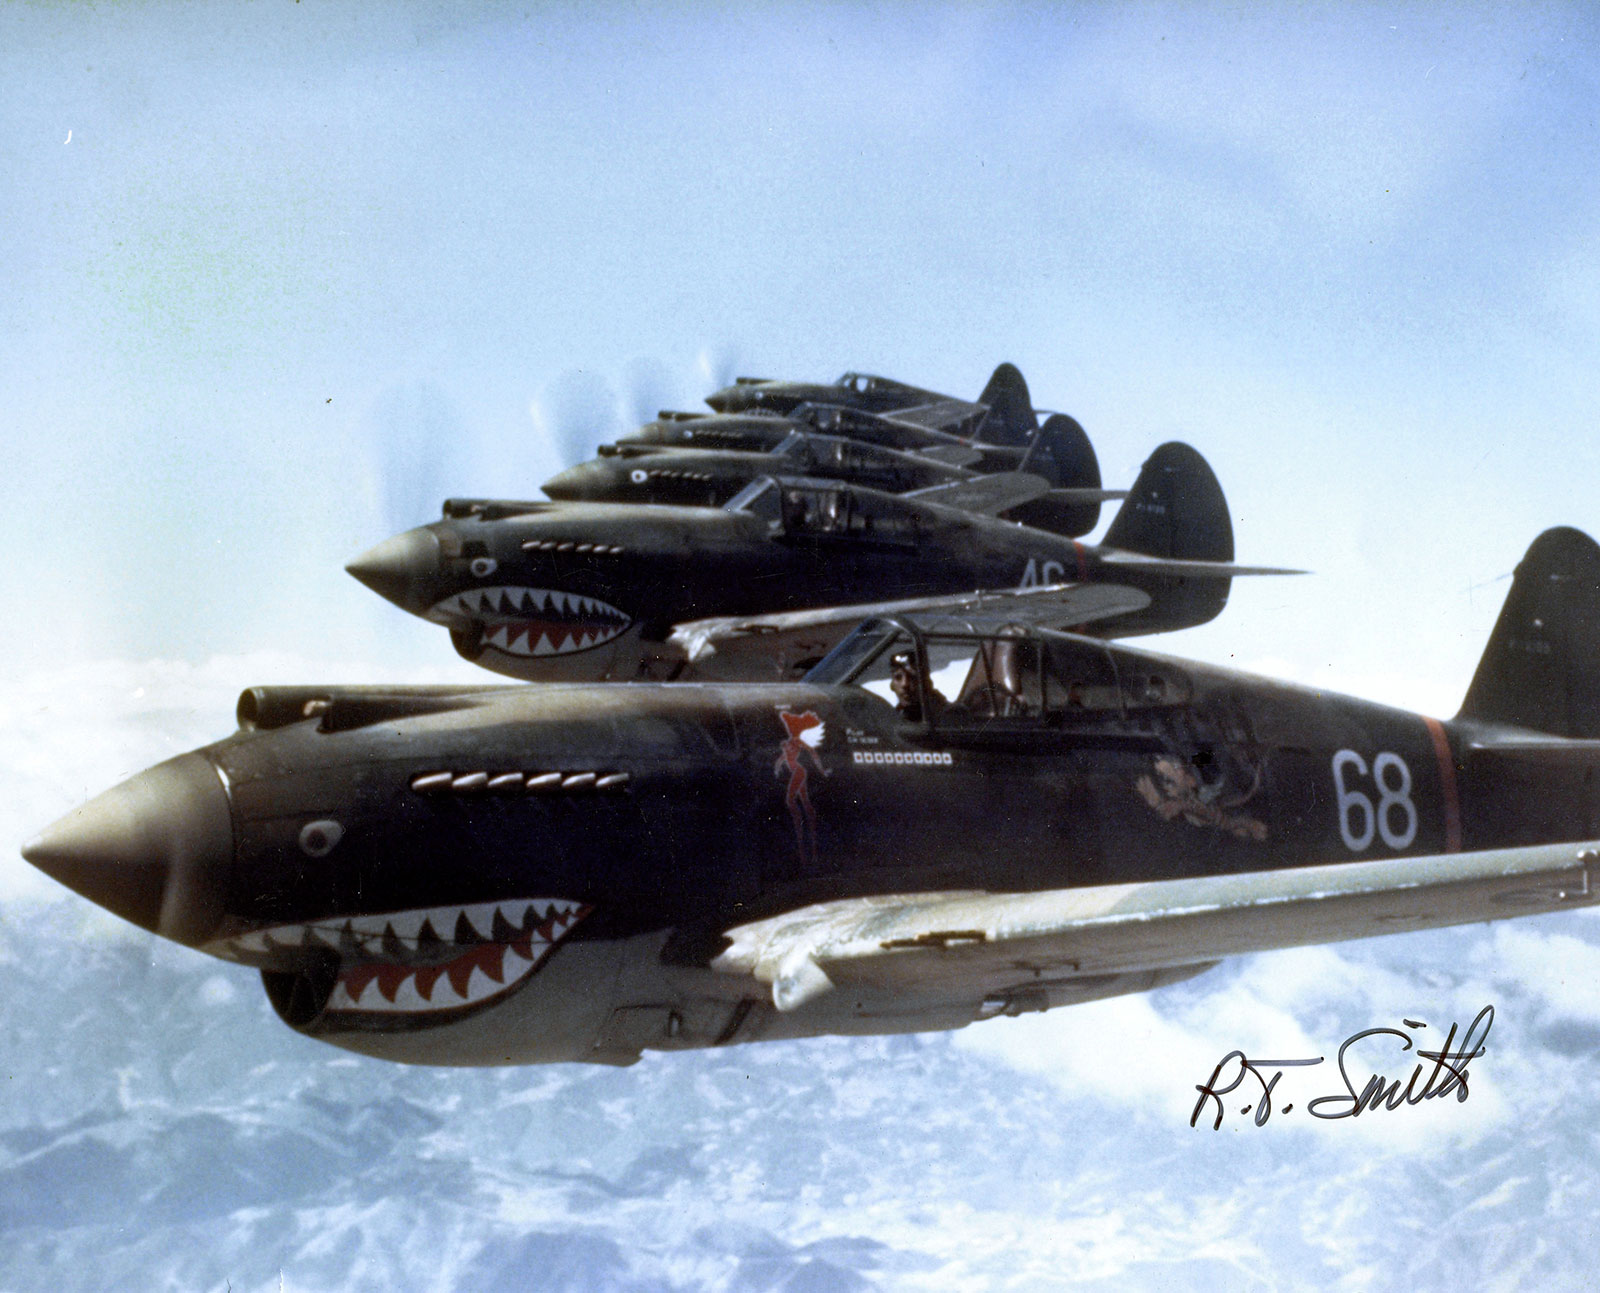 Hells_Angels,_Flying_Tigers_1942_p40_warhawk